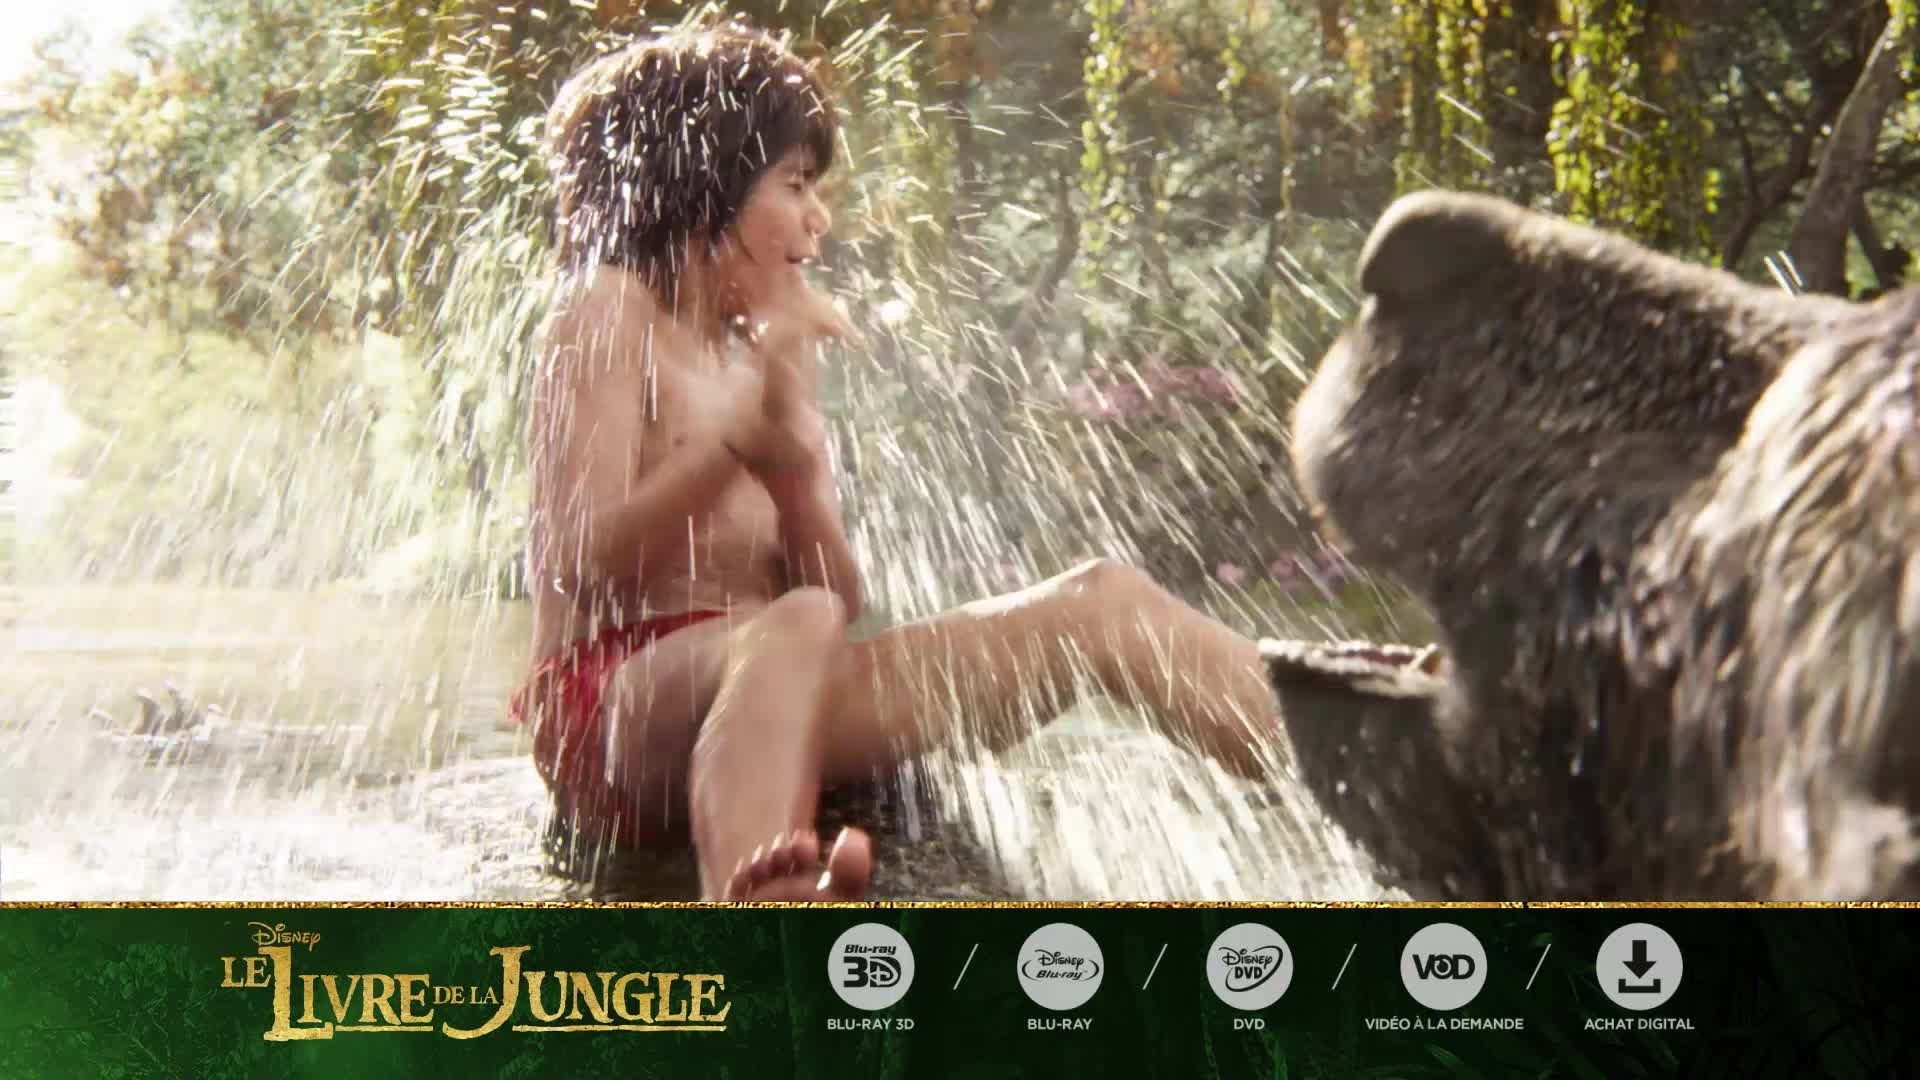 Le Livre de la Jungle - Disponible en DVD, Blu-Ray, VOD et Achat Digital